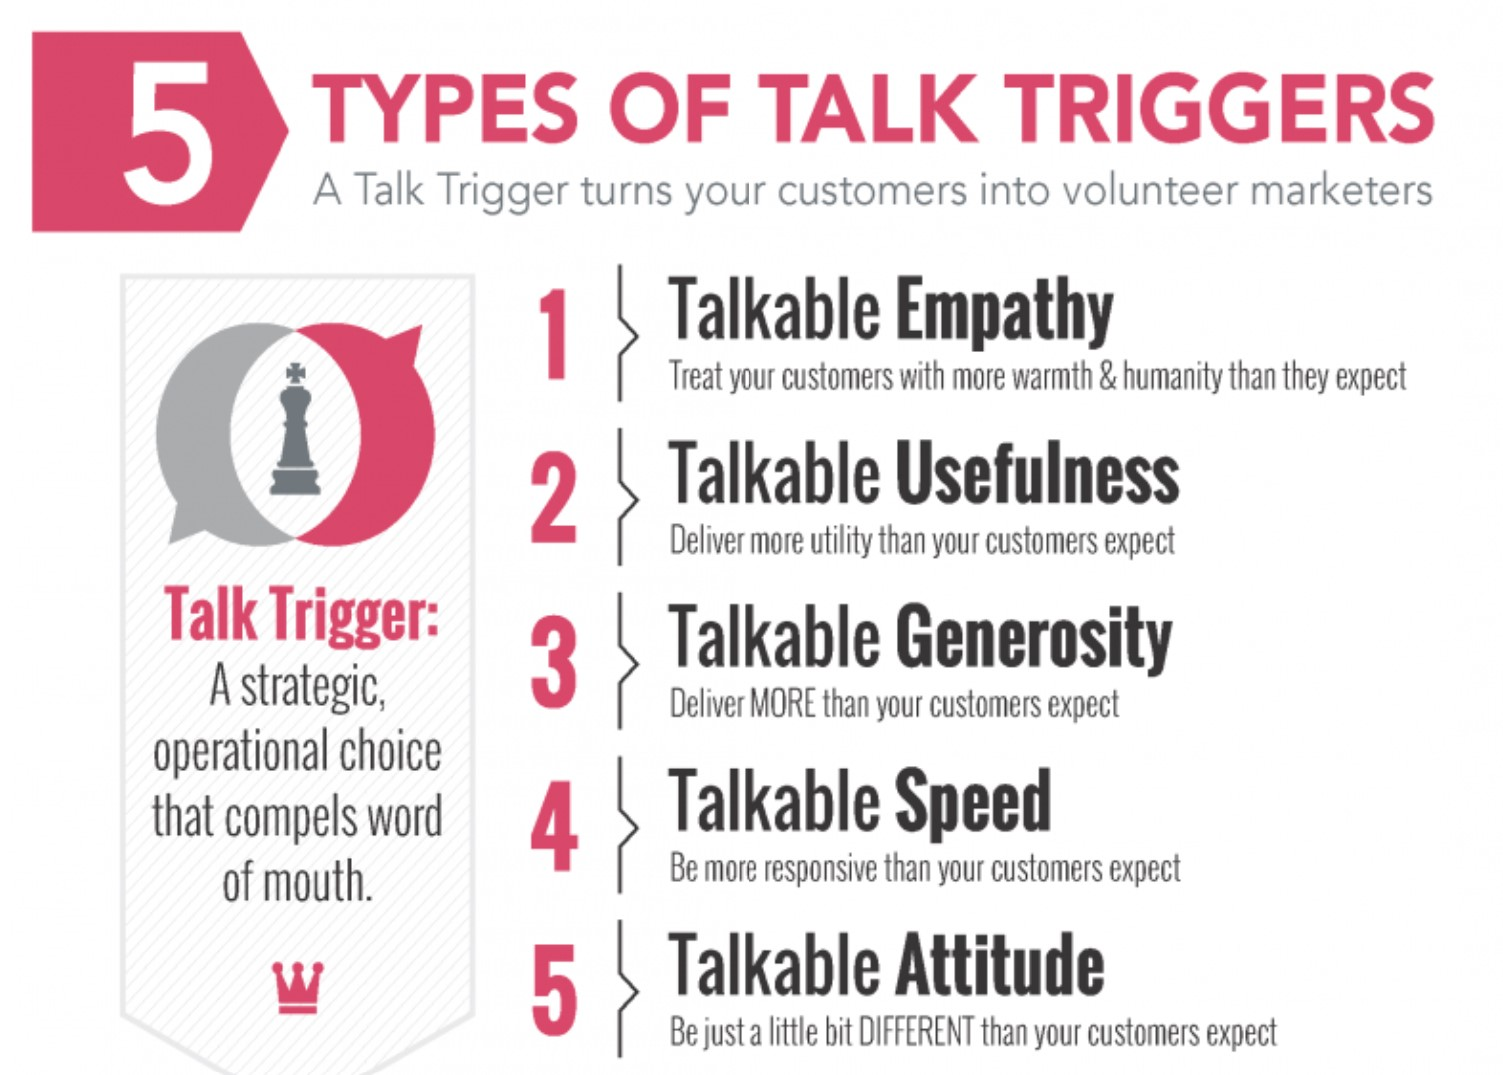 5 Types of Talk Triggers - Turn Your Customers into Volunteer Marketers; Empathy, Usefulness, Generosity, Speed and Attitude